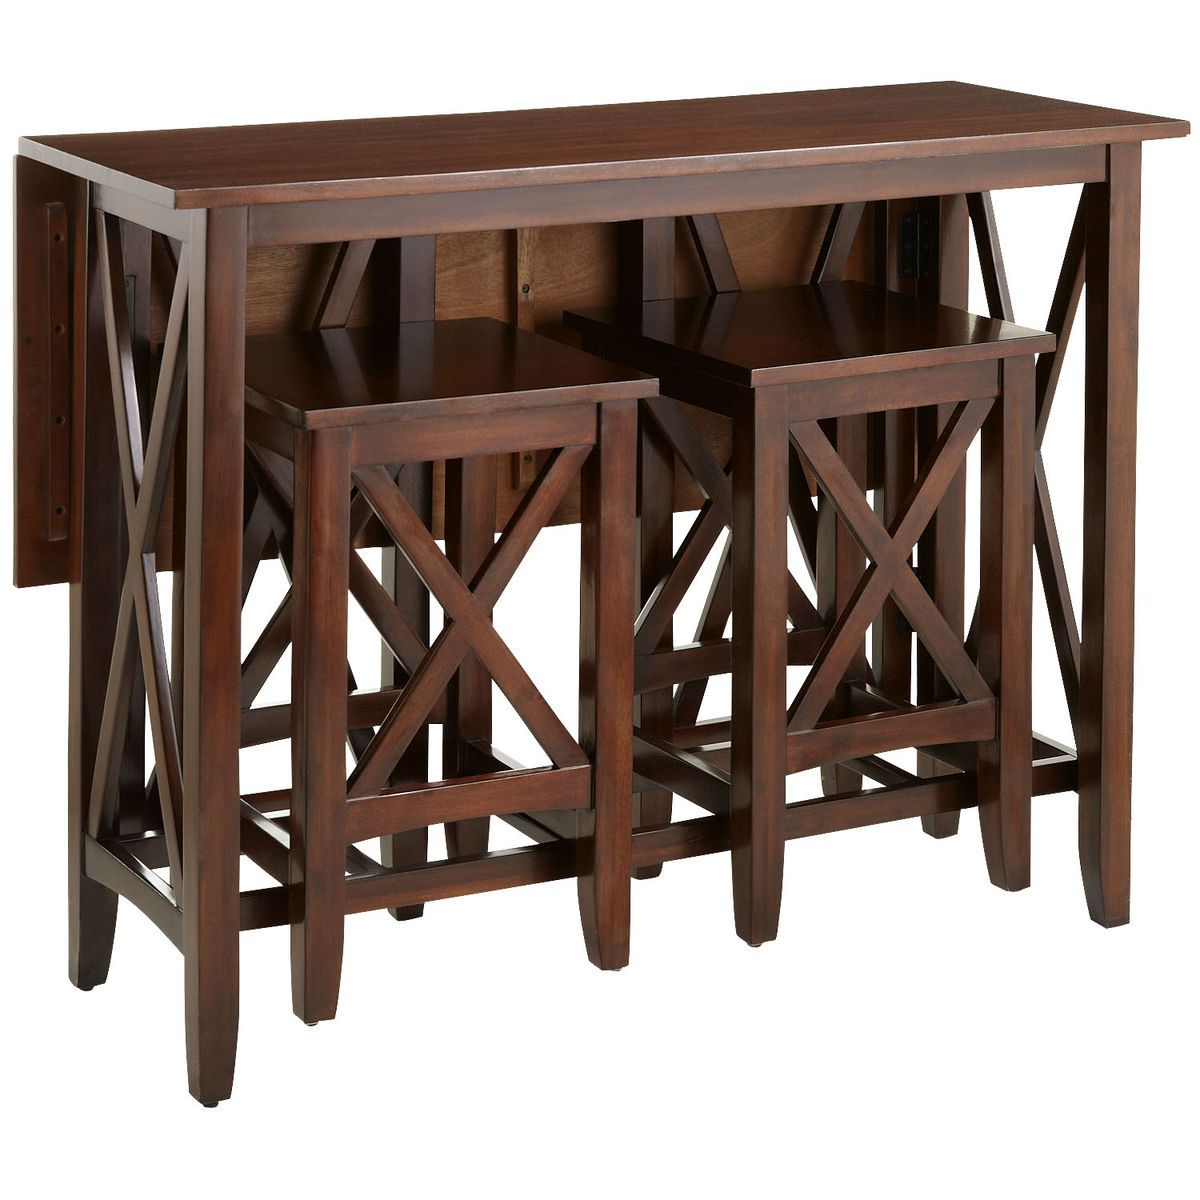 Kenzie Mahogany Brown Breakfast Table Set | Breakfast table setting ...